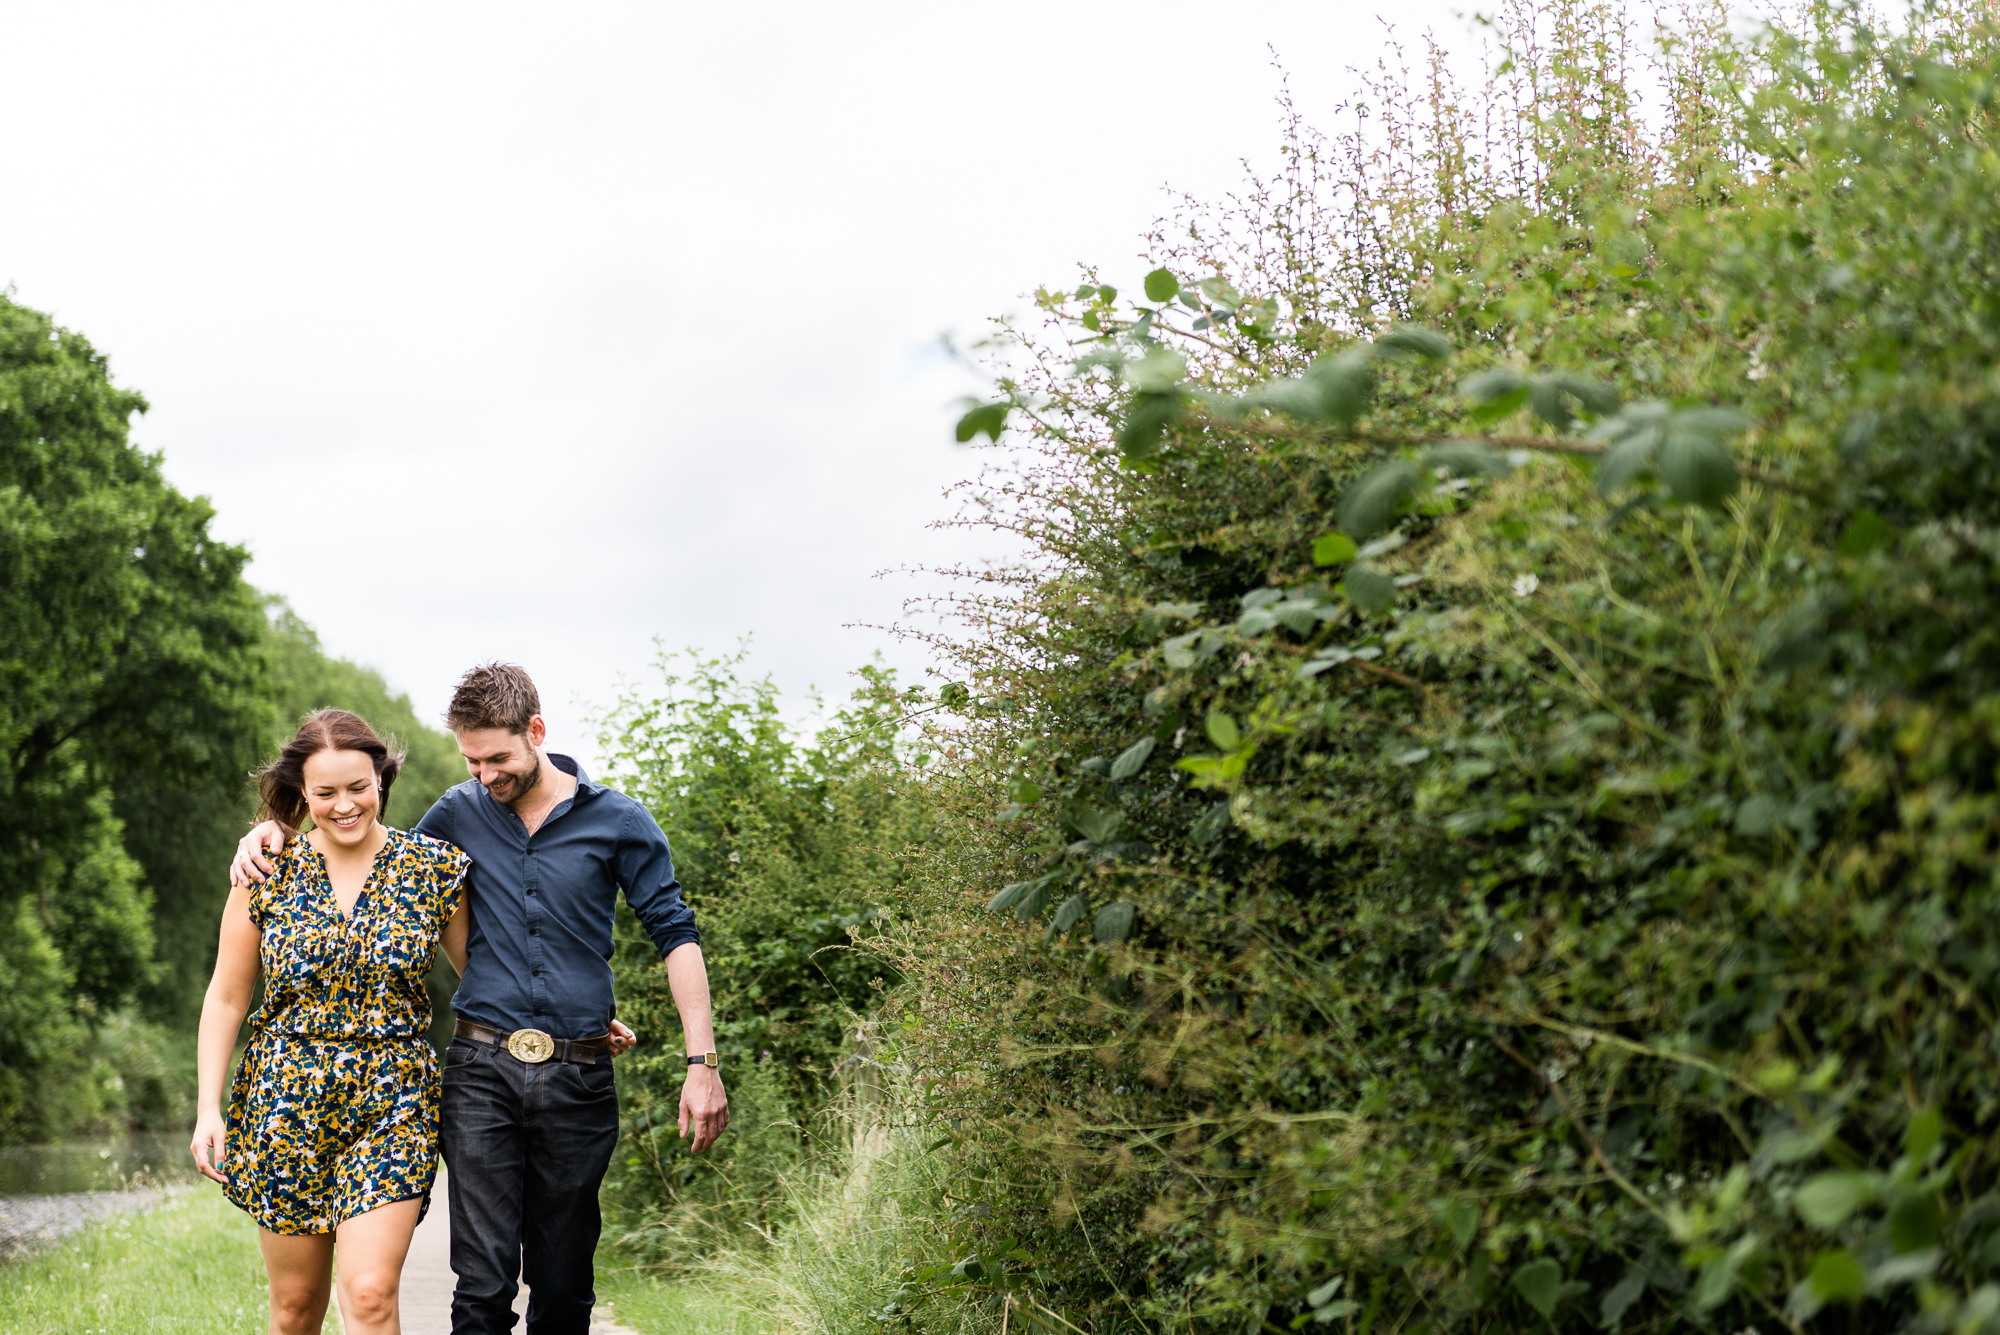 Pre-Wedding Session Engagement Photos Couple Shoot English countryside Canal - Jenny Harper Photography-5.jpg